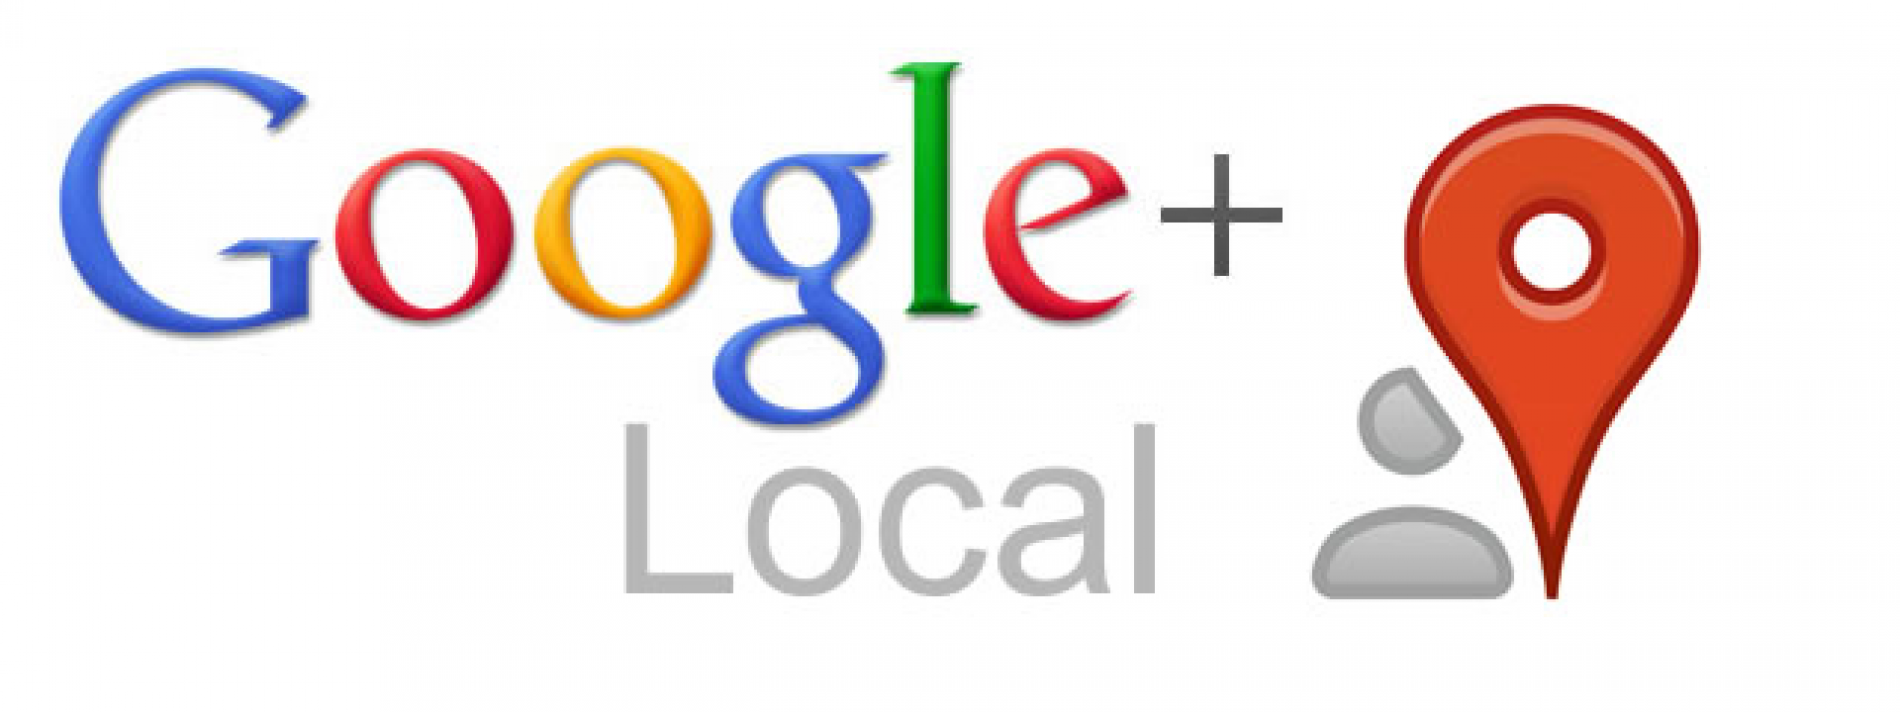 LOCAL LISTING HELPS YOUR WEBSITE TO IMPROVE YOUR BUSINESS